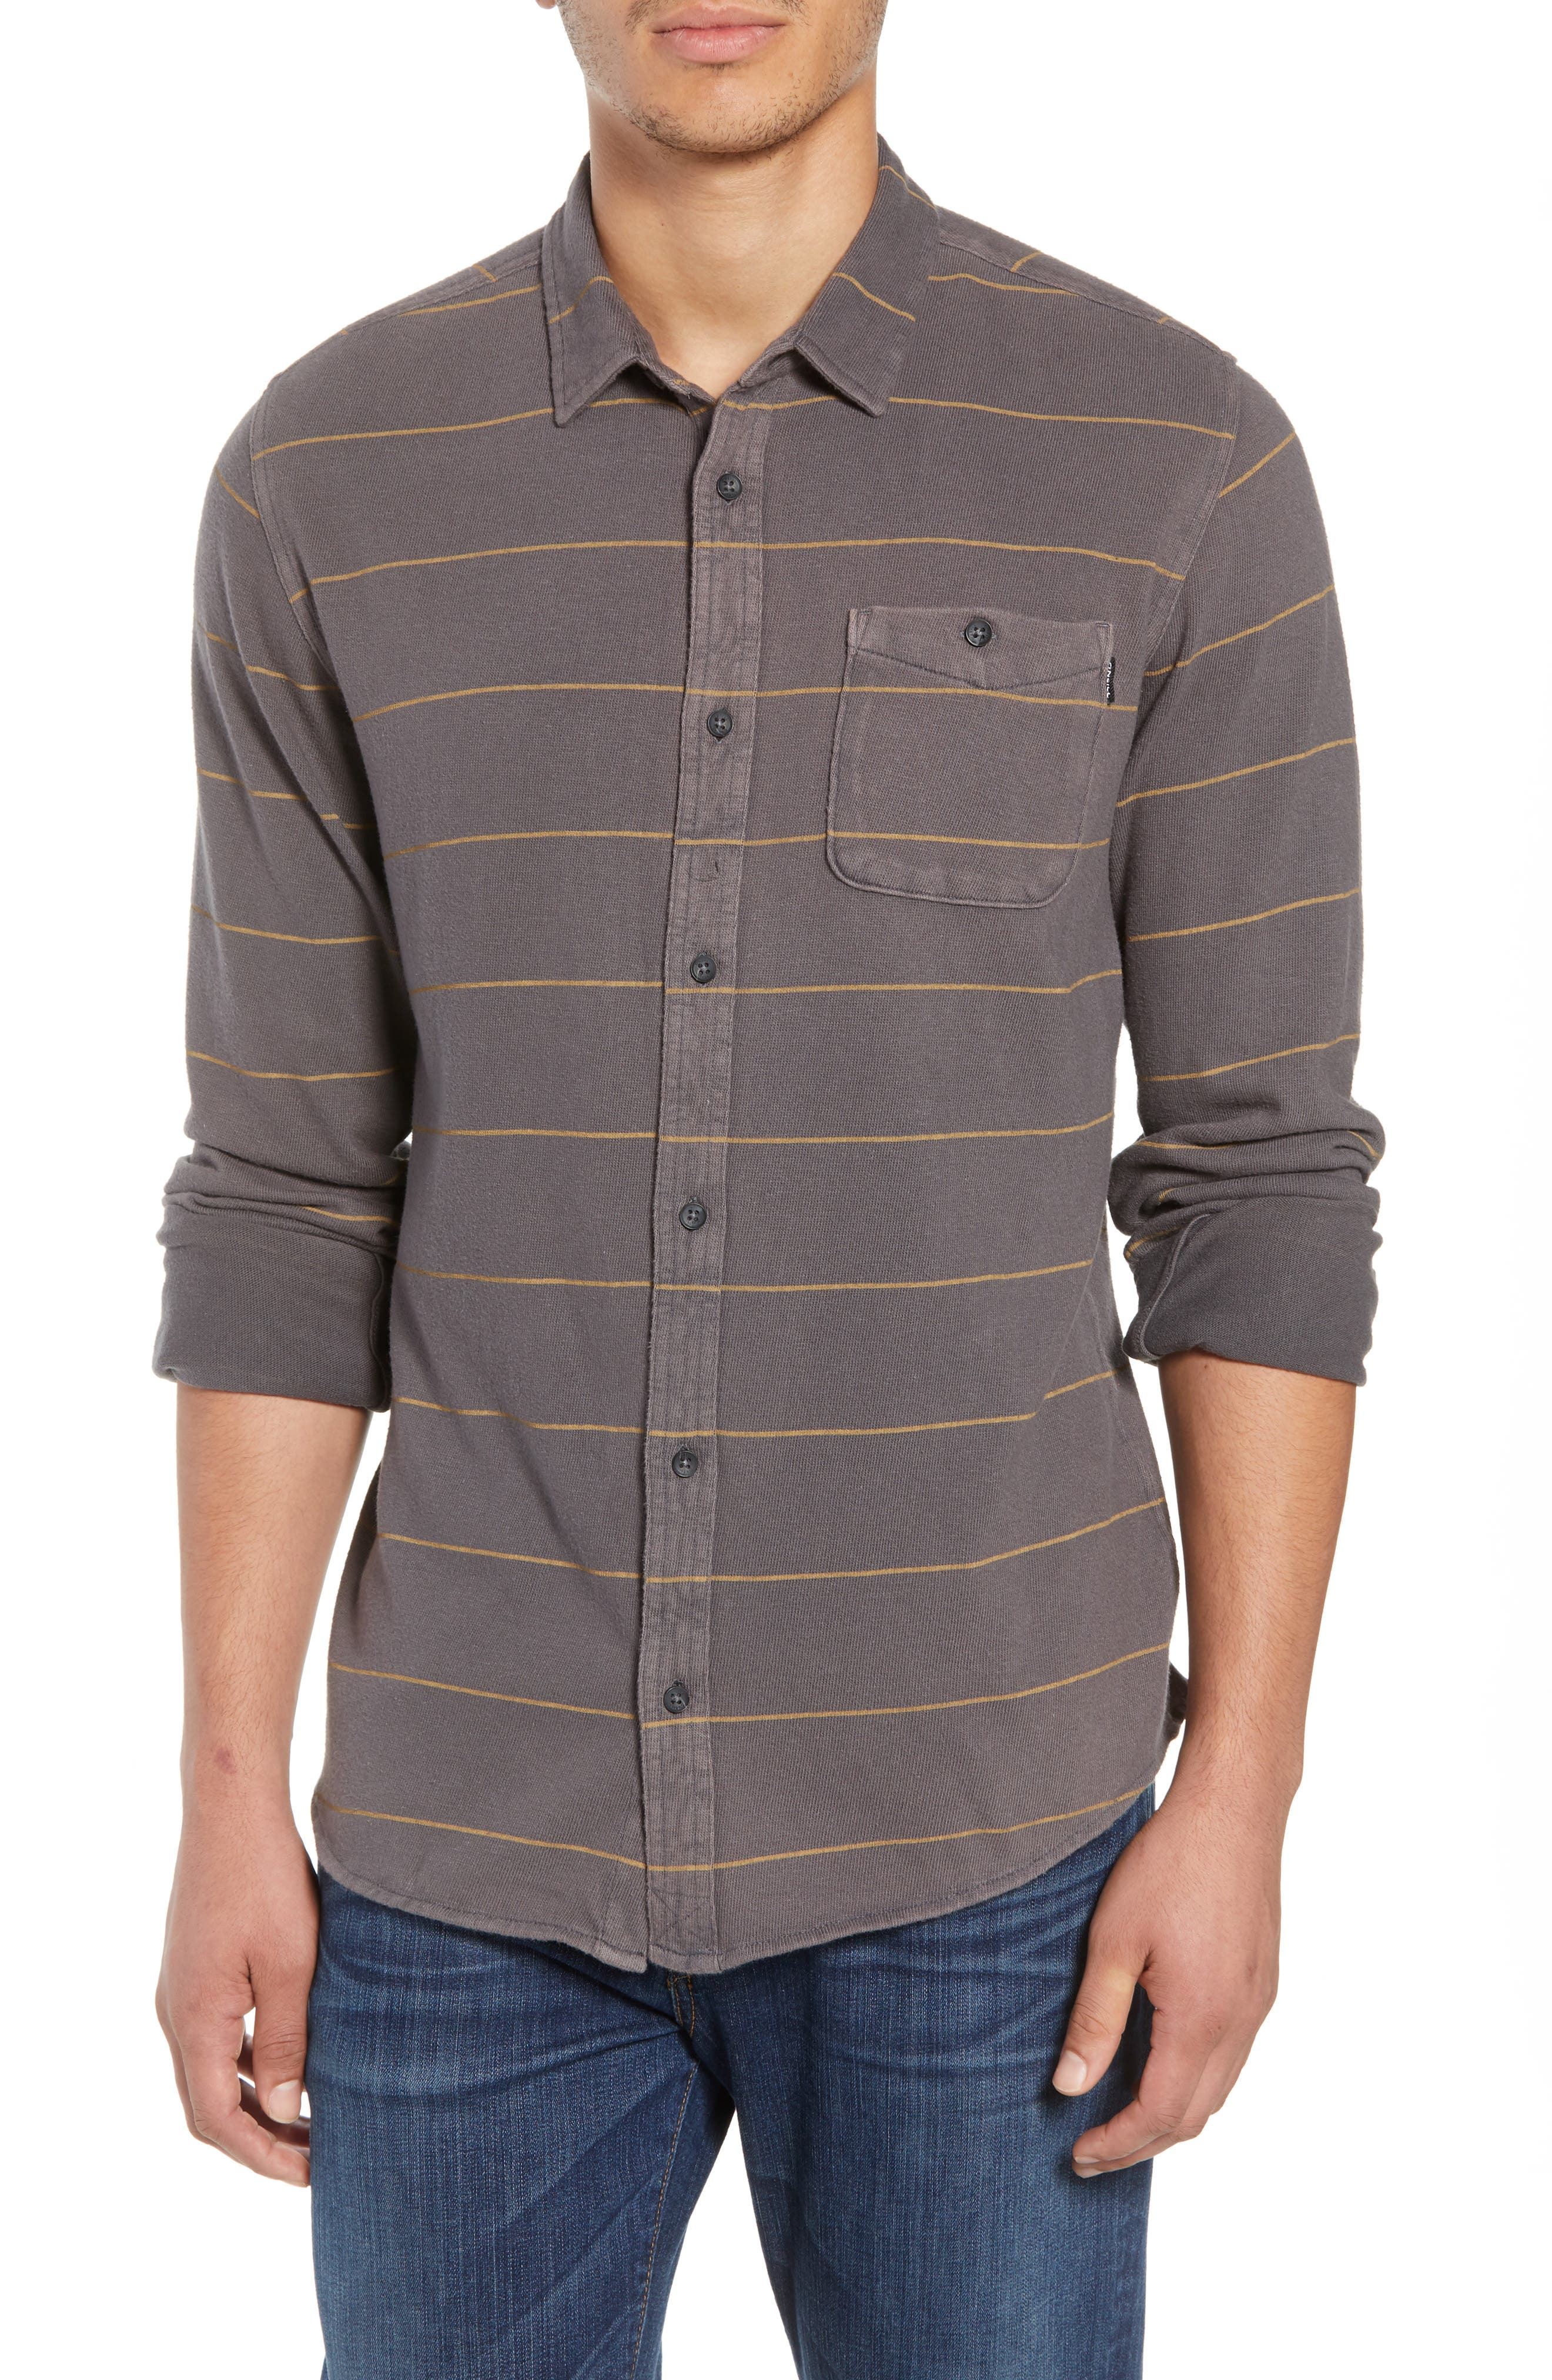 Cowell Knit Button-Up Shirt,                             Main thumbnail 1, color,                             020